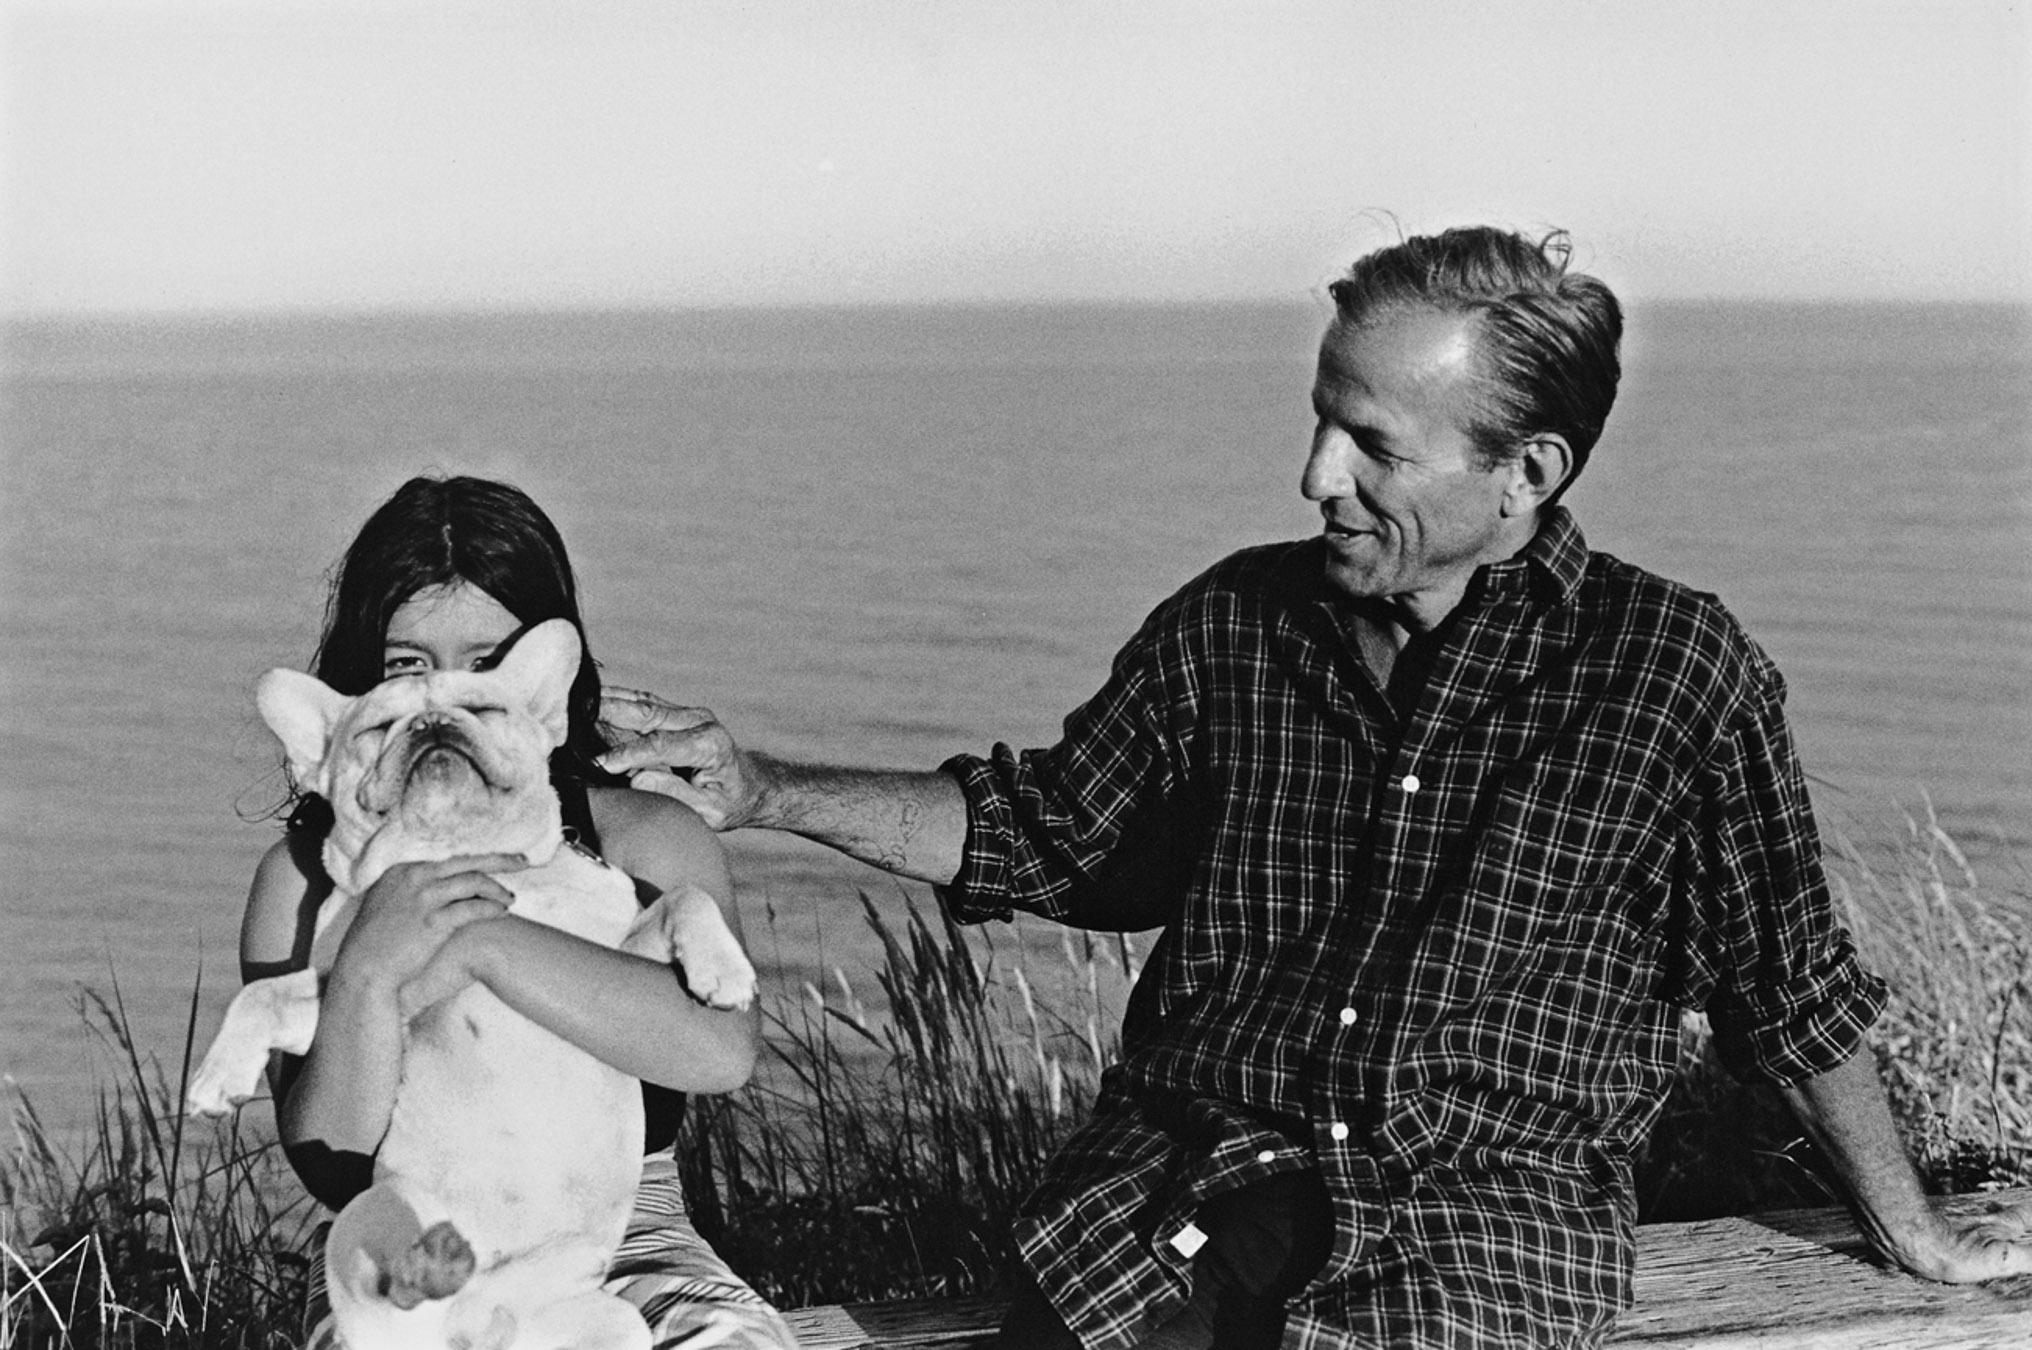 Zara and Peter Beard, Montauk, Long Island 1997